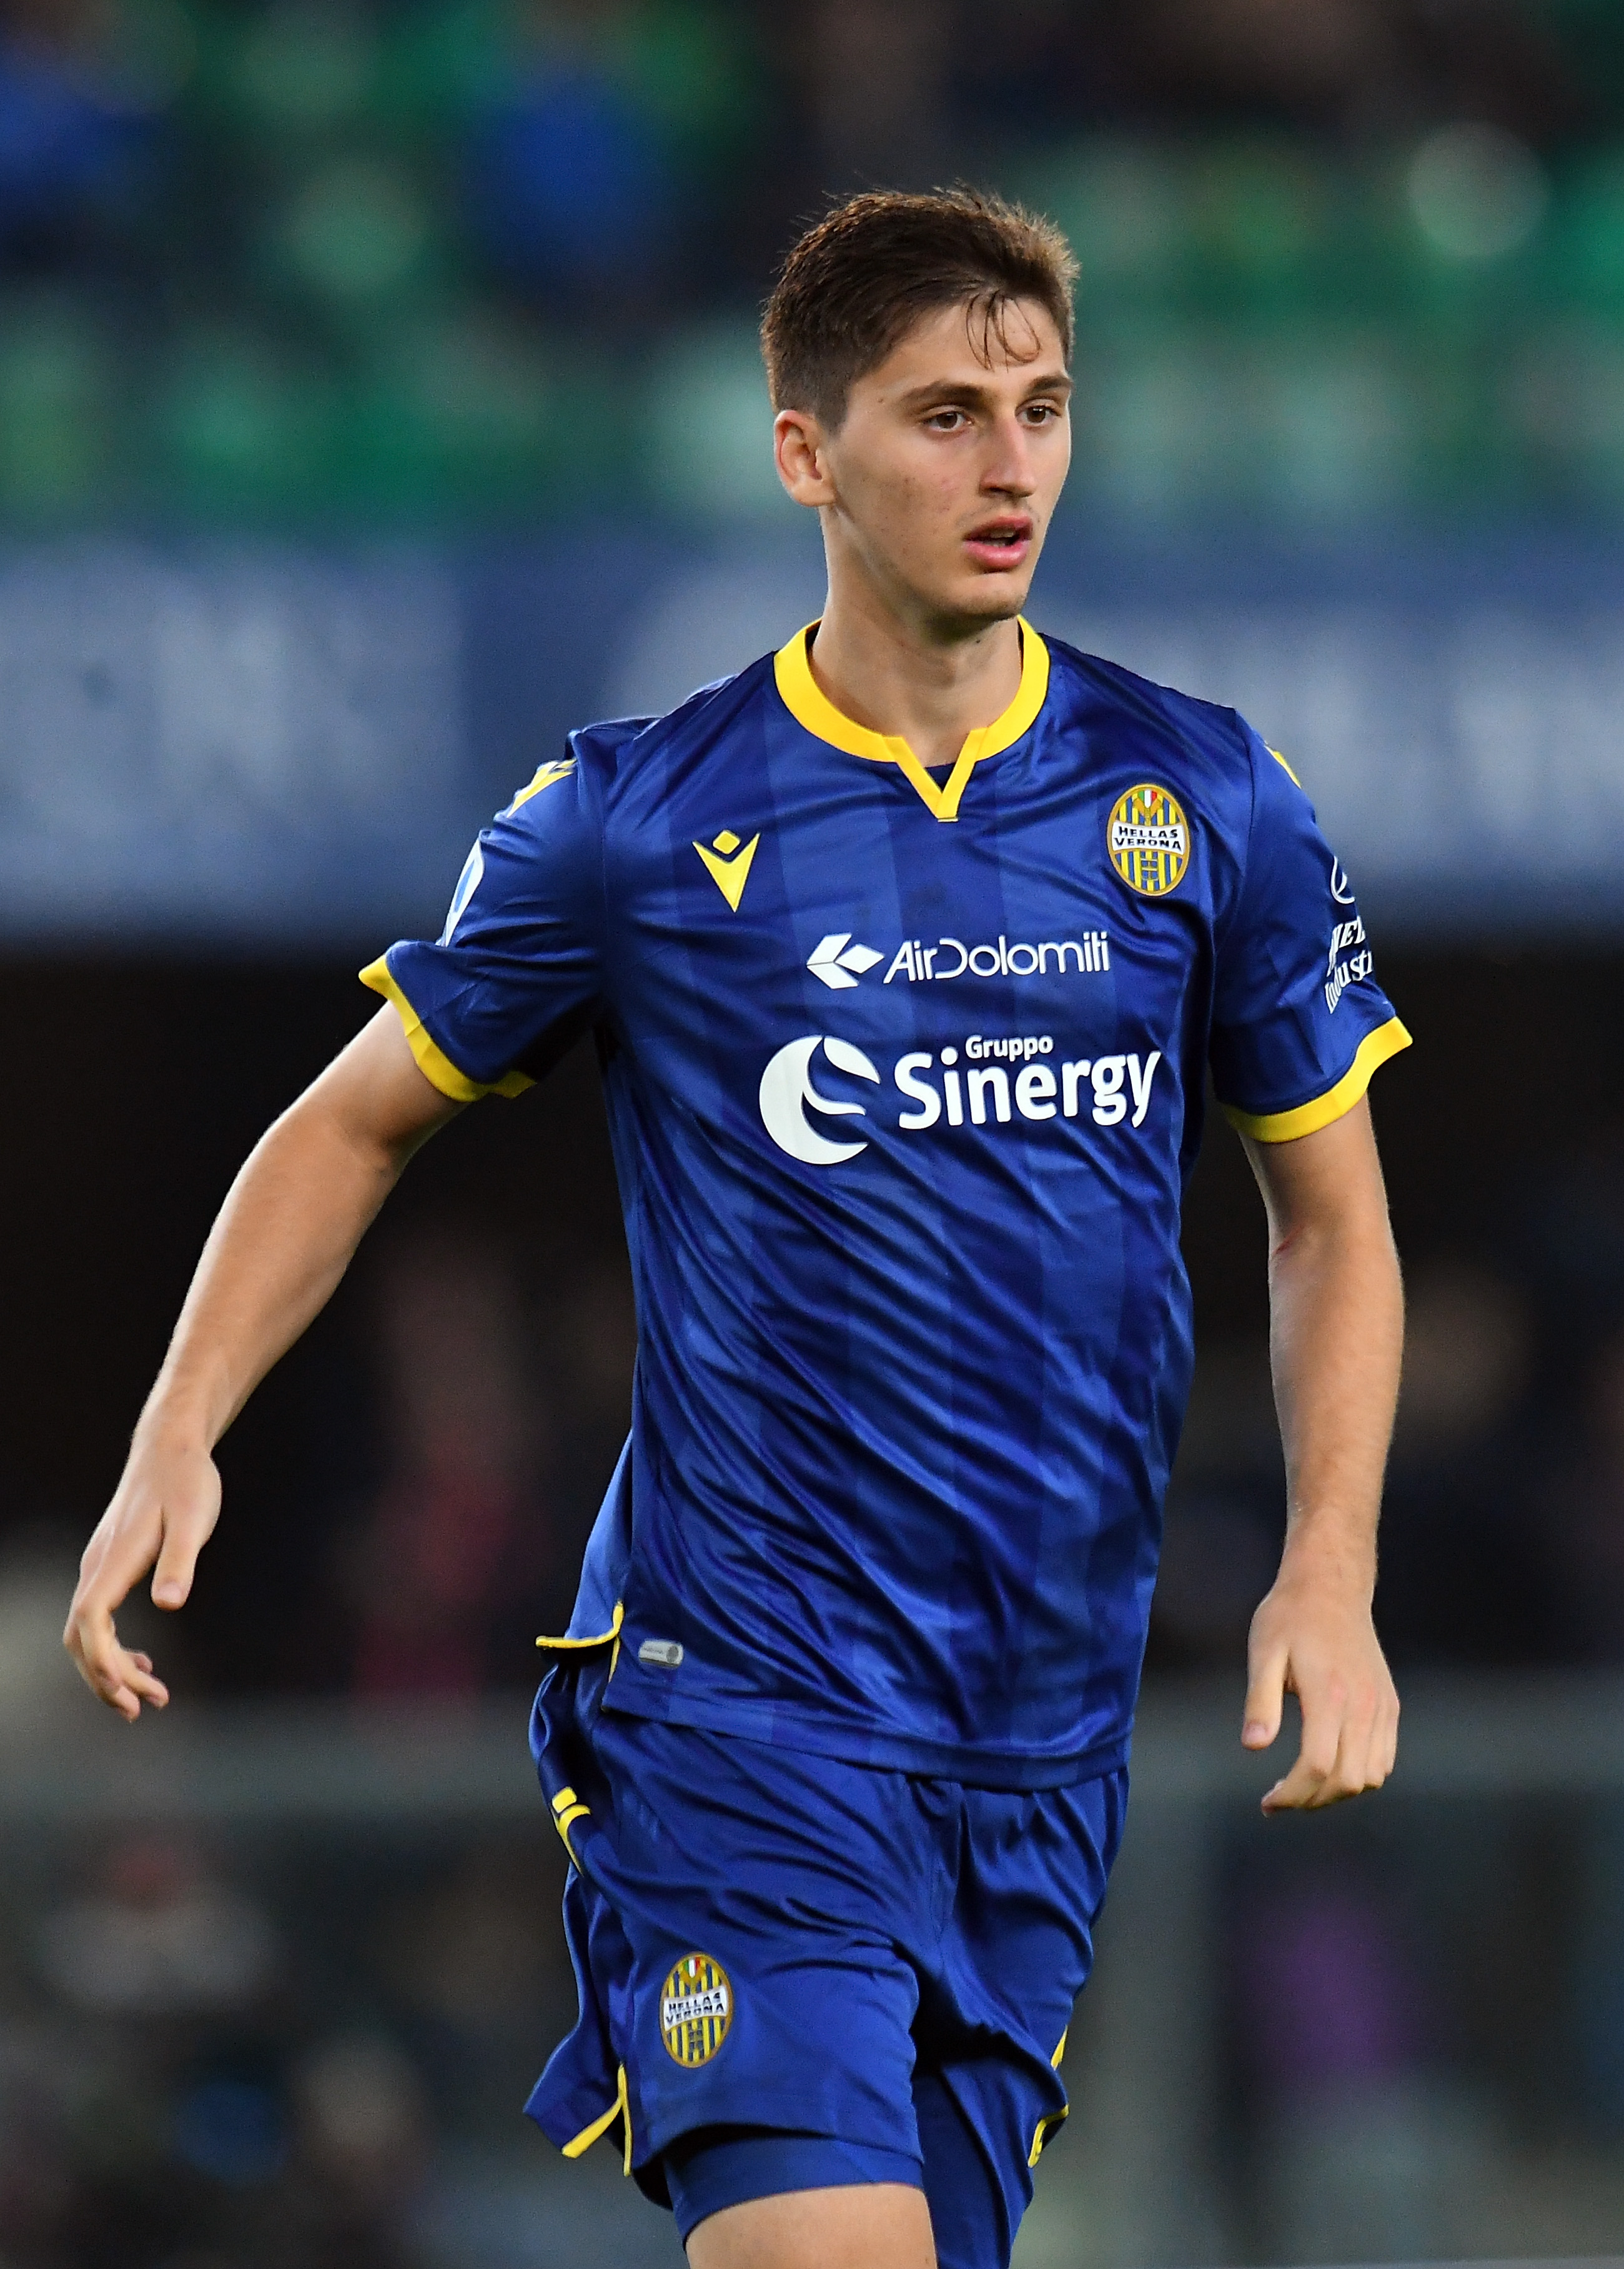 Everton in race for one of Serie A's brightest defensive prospects